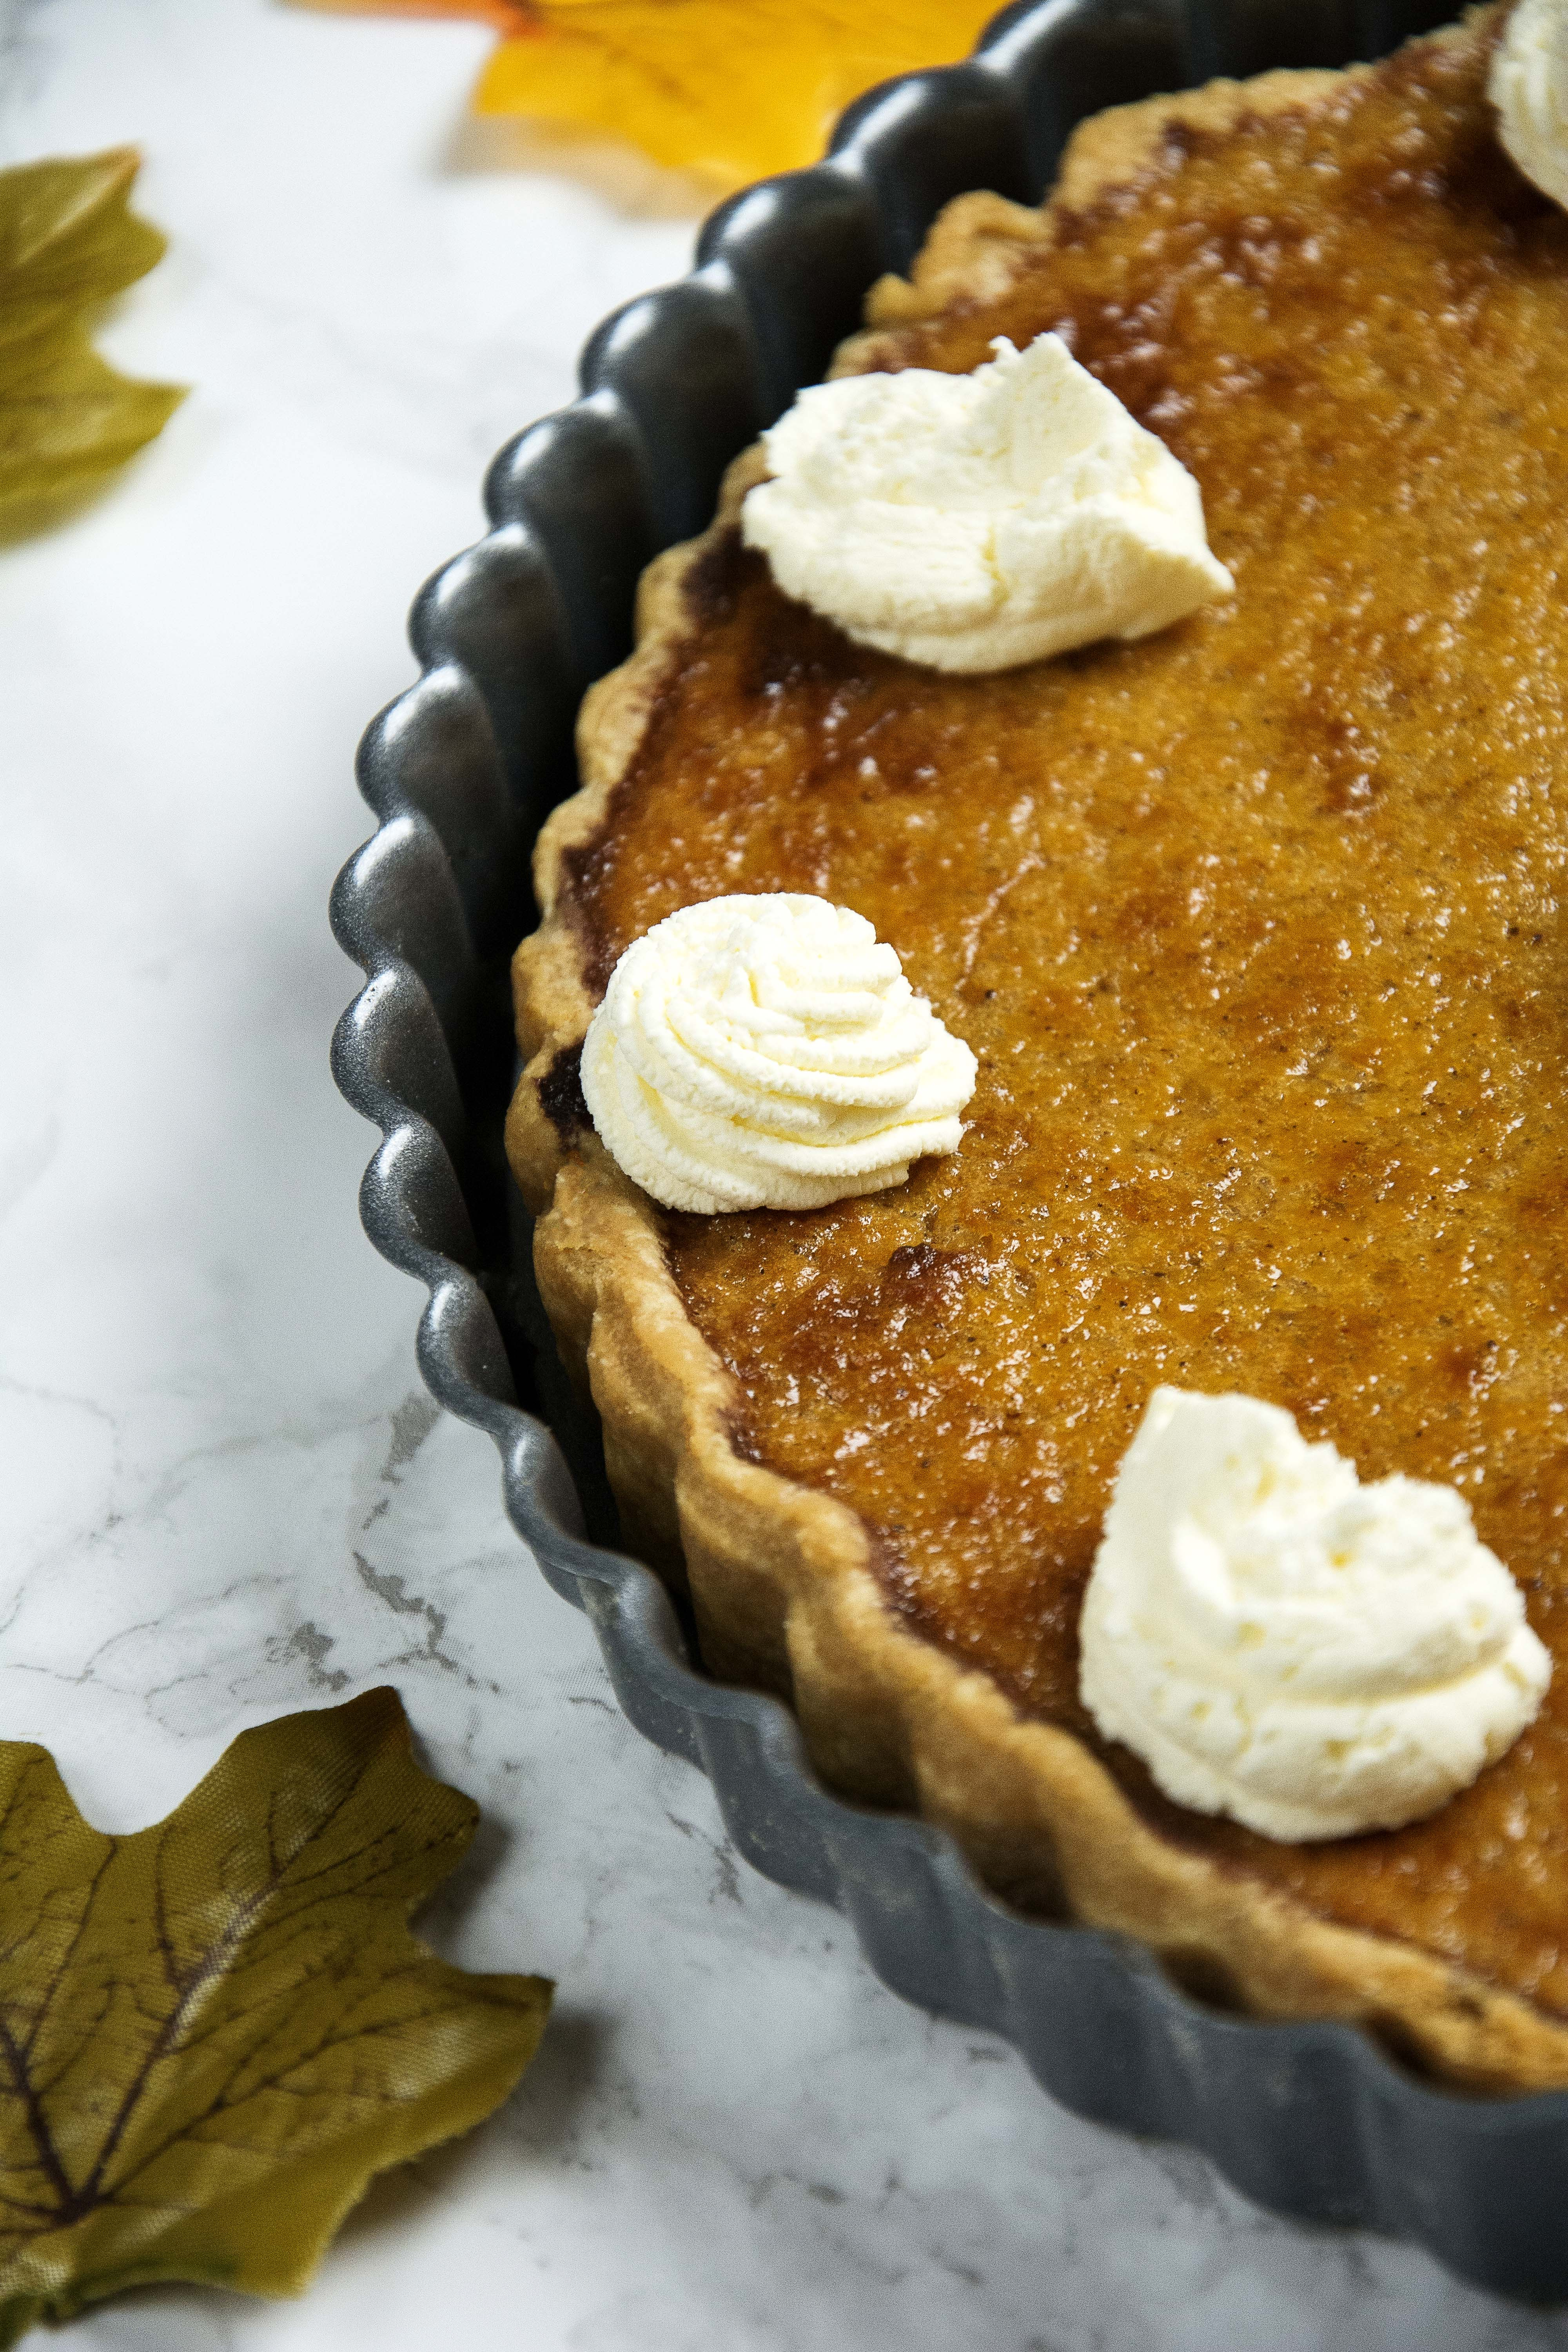 Classic pumpkin pie recipe, whats eating manchester